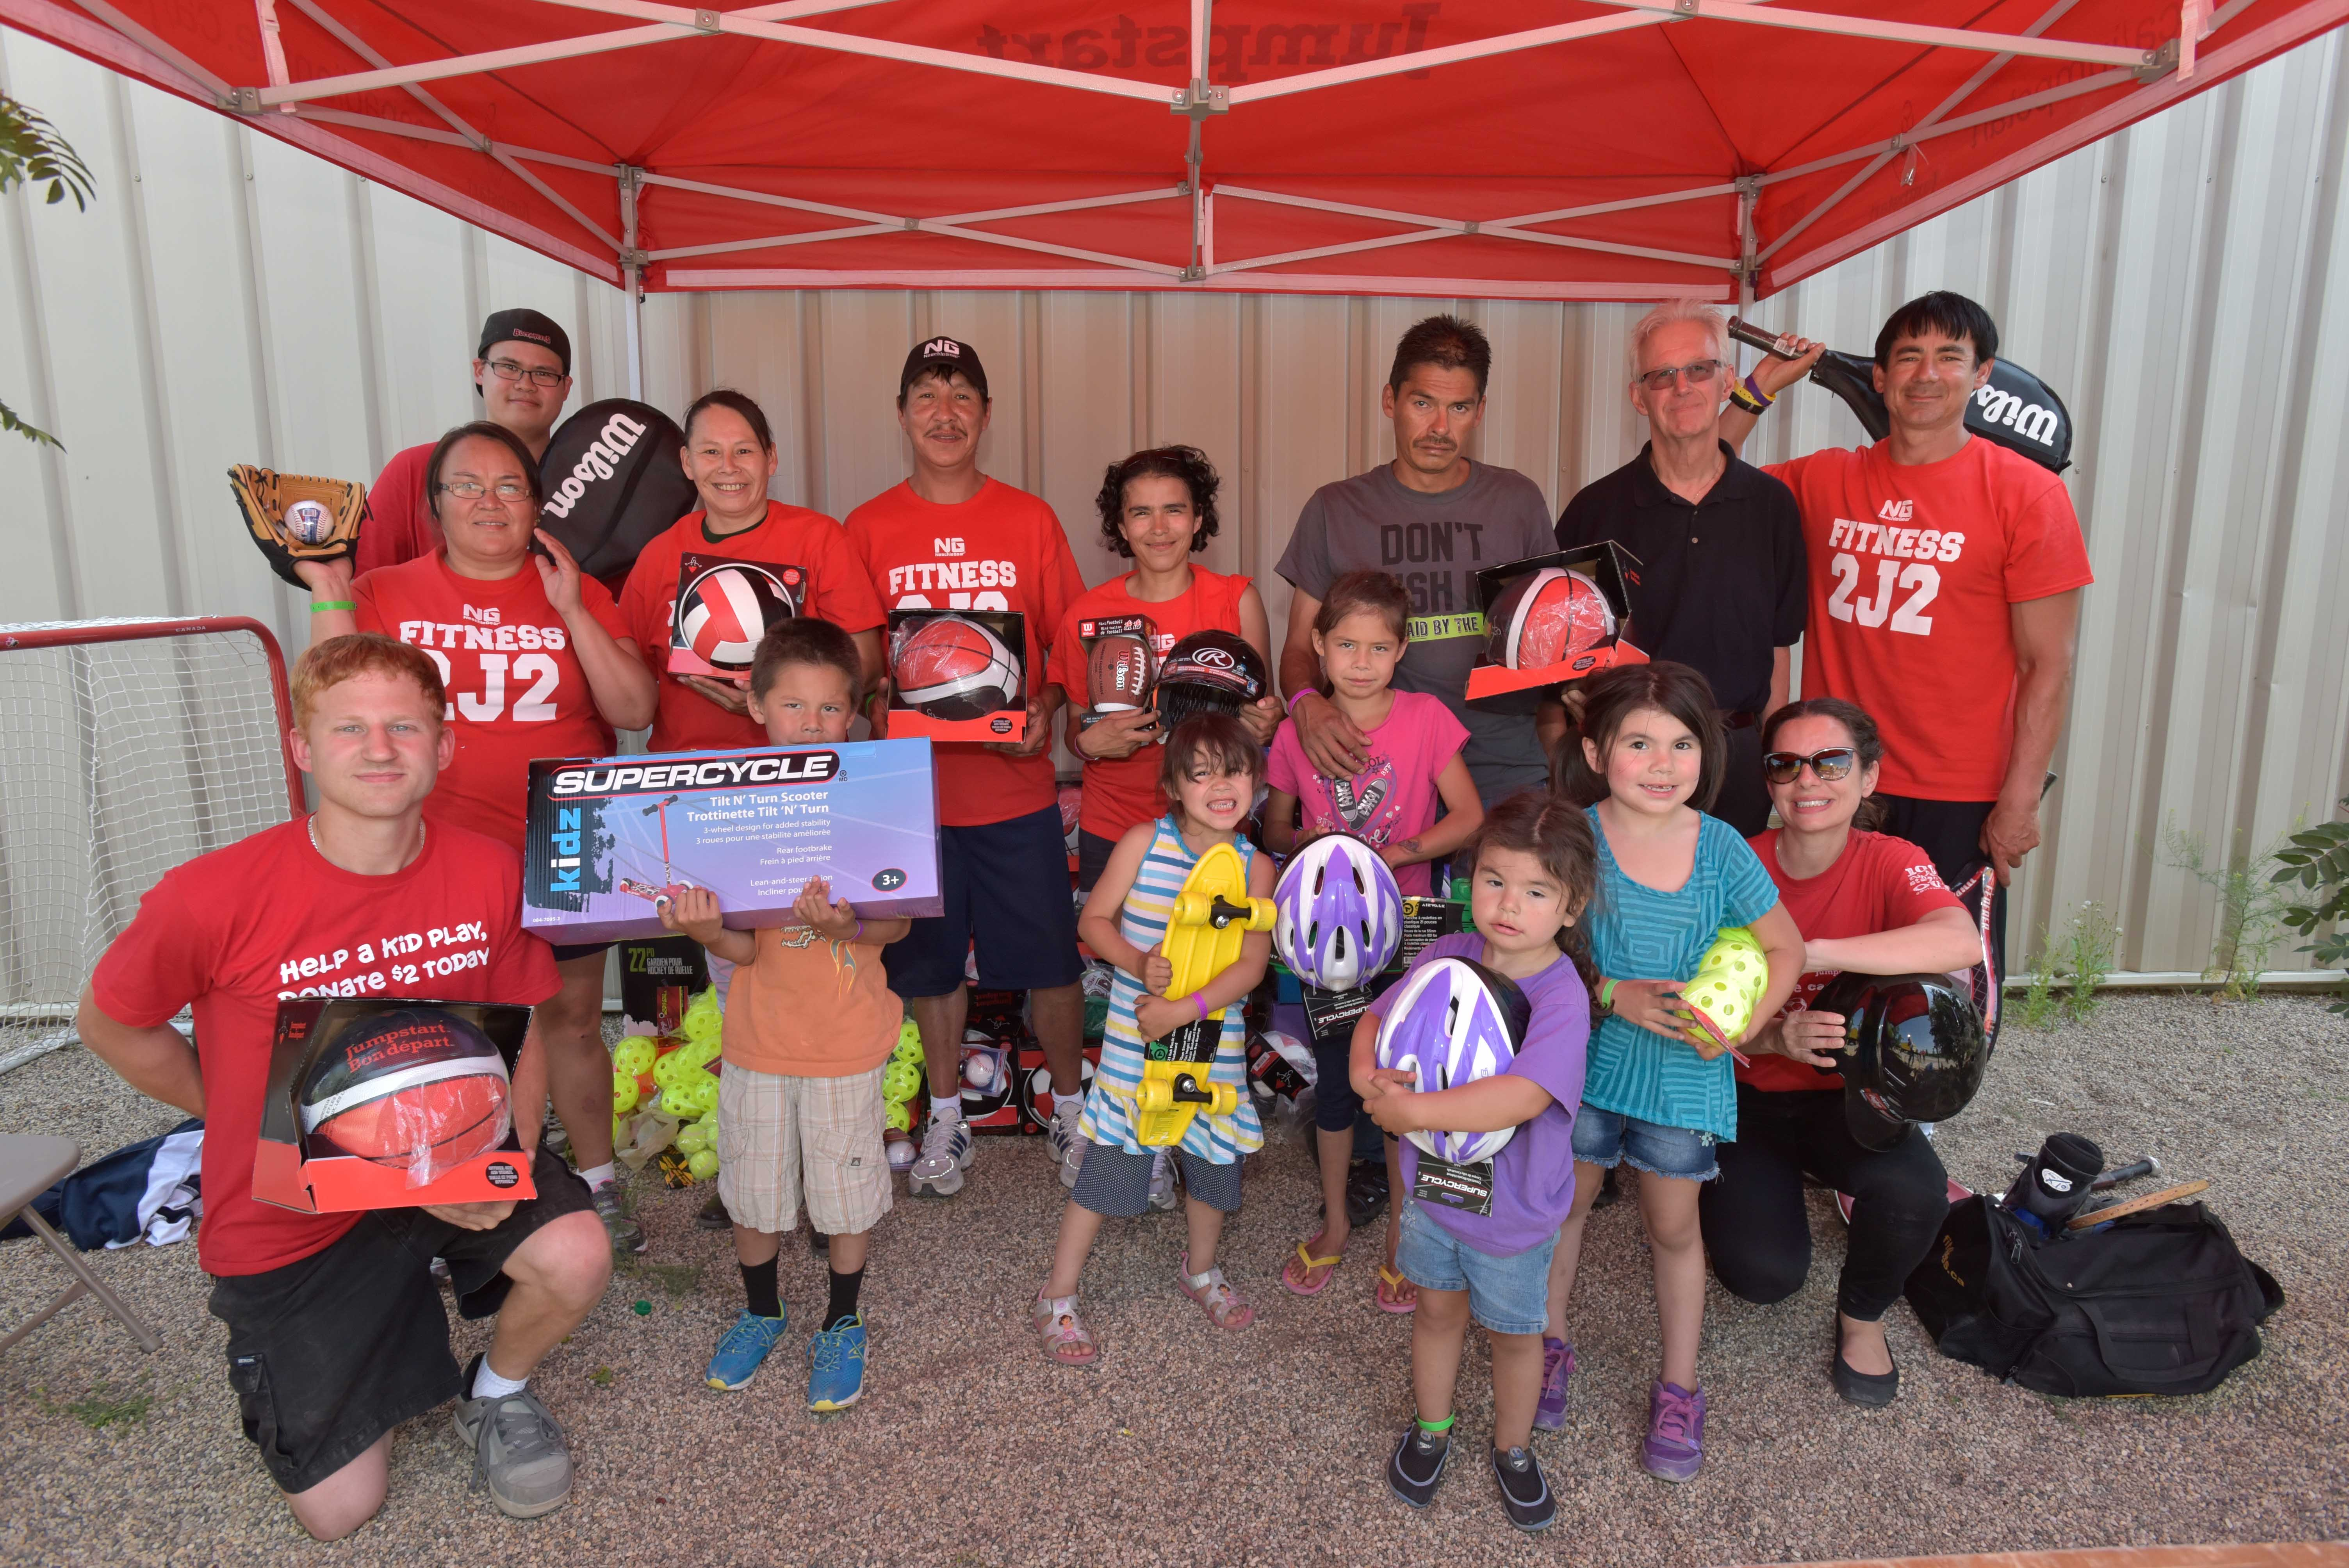 Canadian Tire stores in Saskatoon organized a donation of sporting equipment for people displaced by forest fires in northern Saskatchewan to soccer centres in Saskatoon on Thursday, July 9, 2015. (Canadian Press Images - Derek Mortensen)